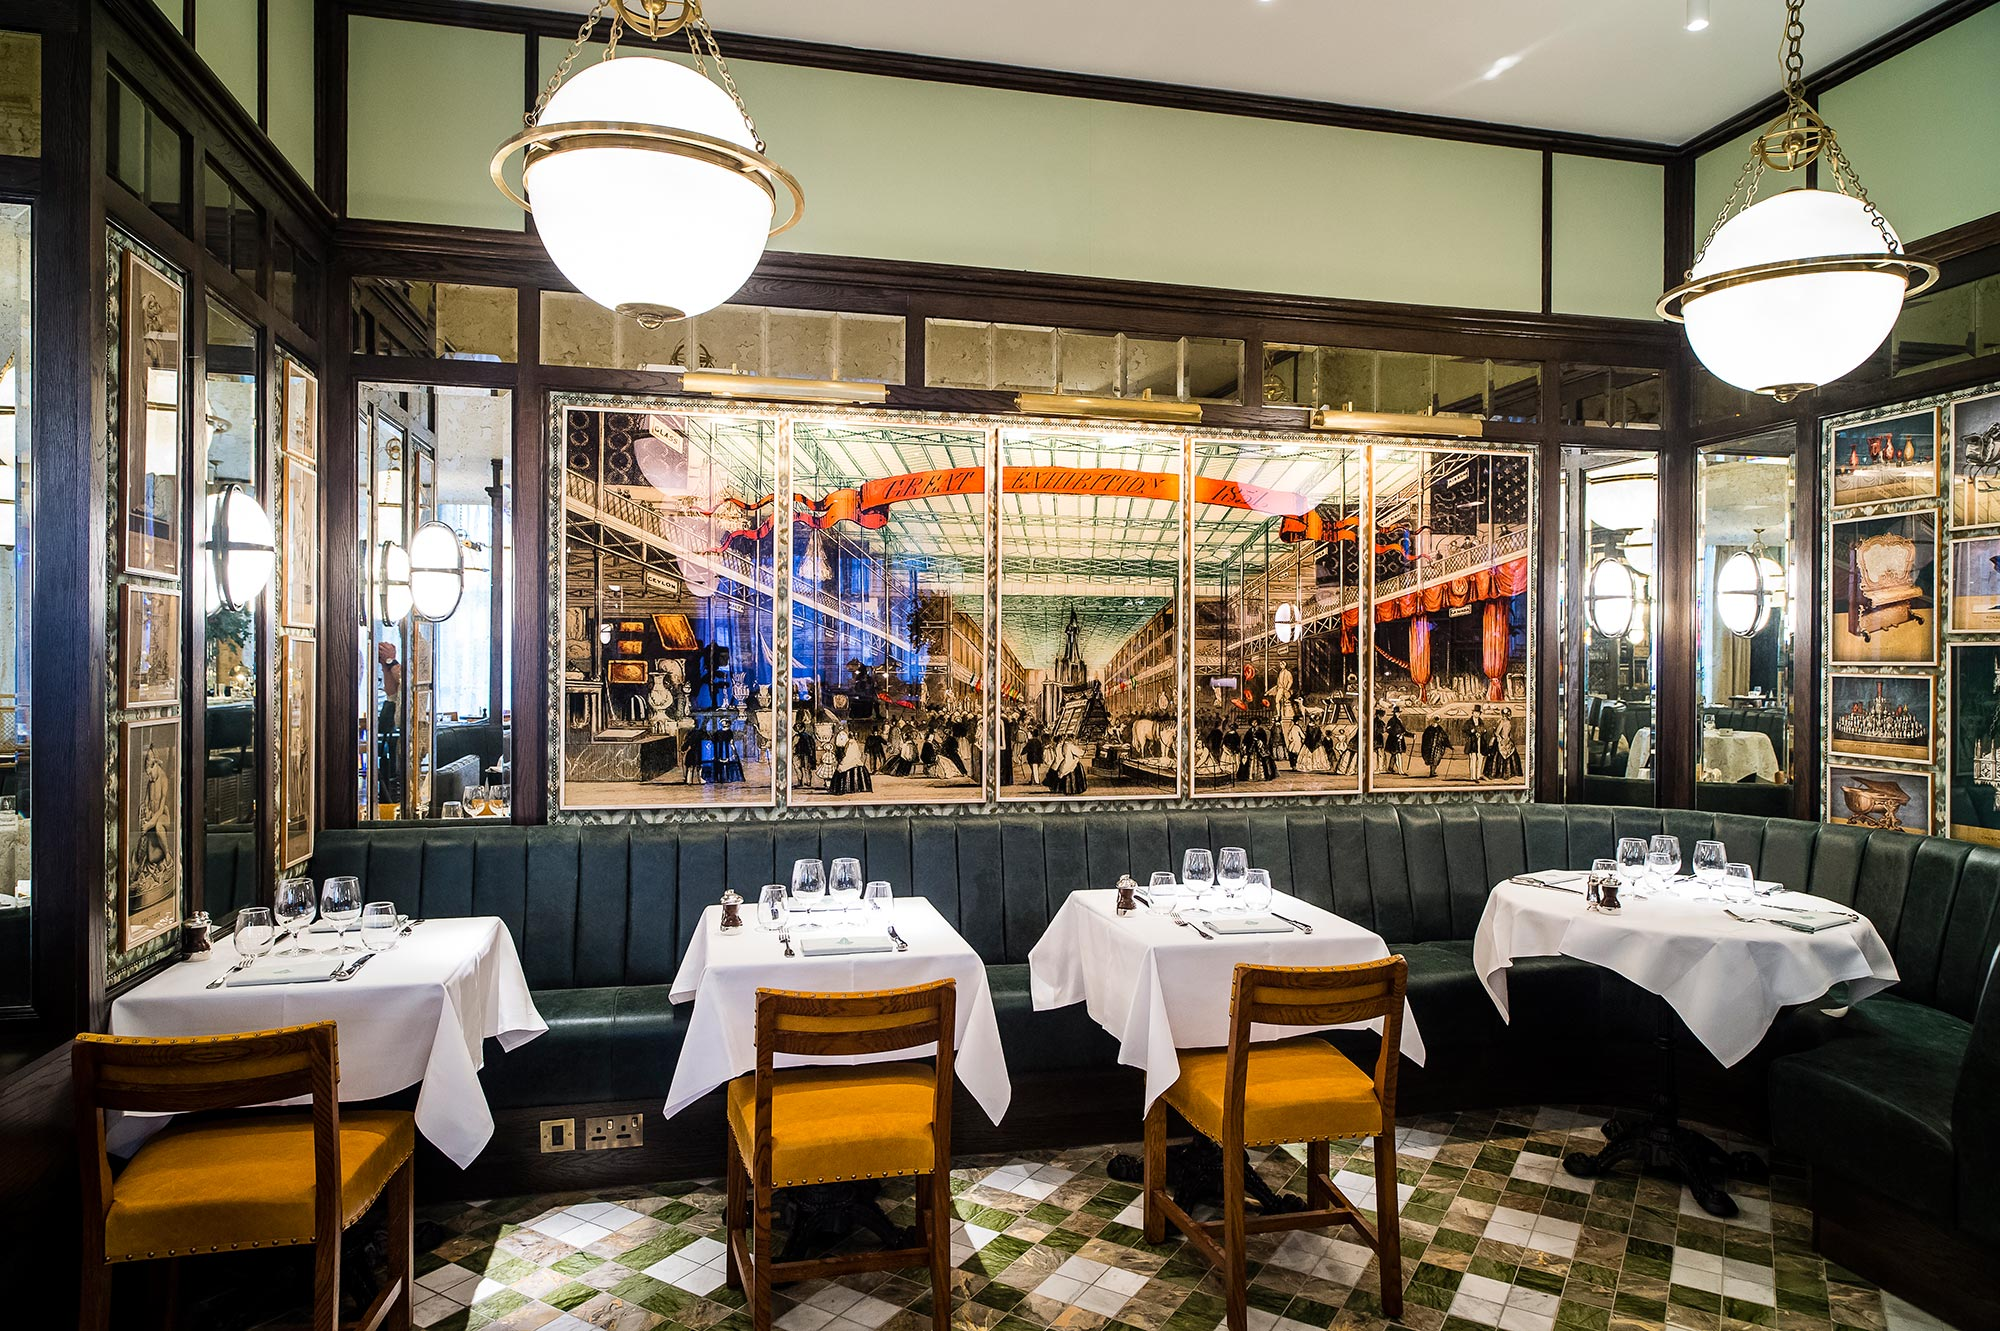 Restaurant Image Gallery The Ivy Kensington Brasserie